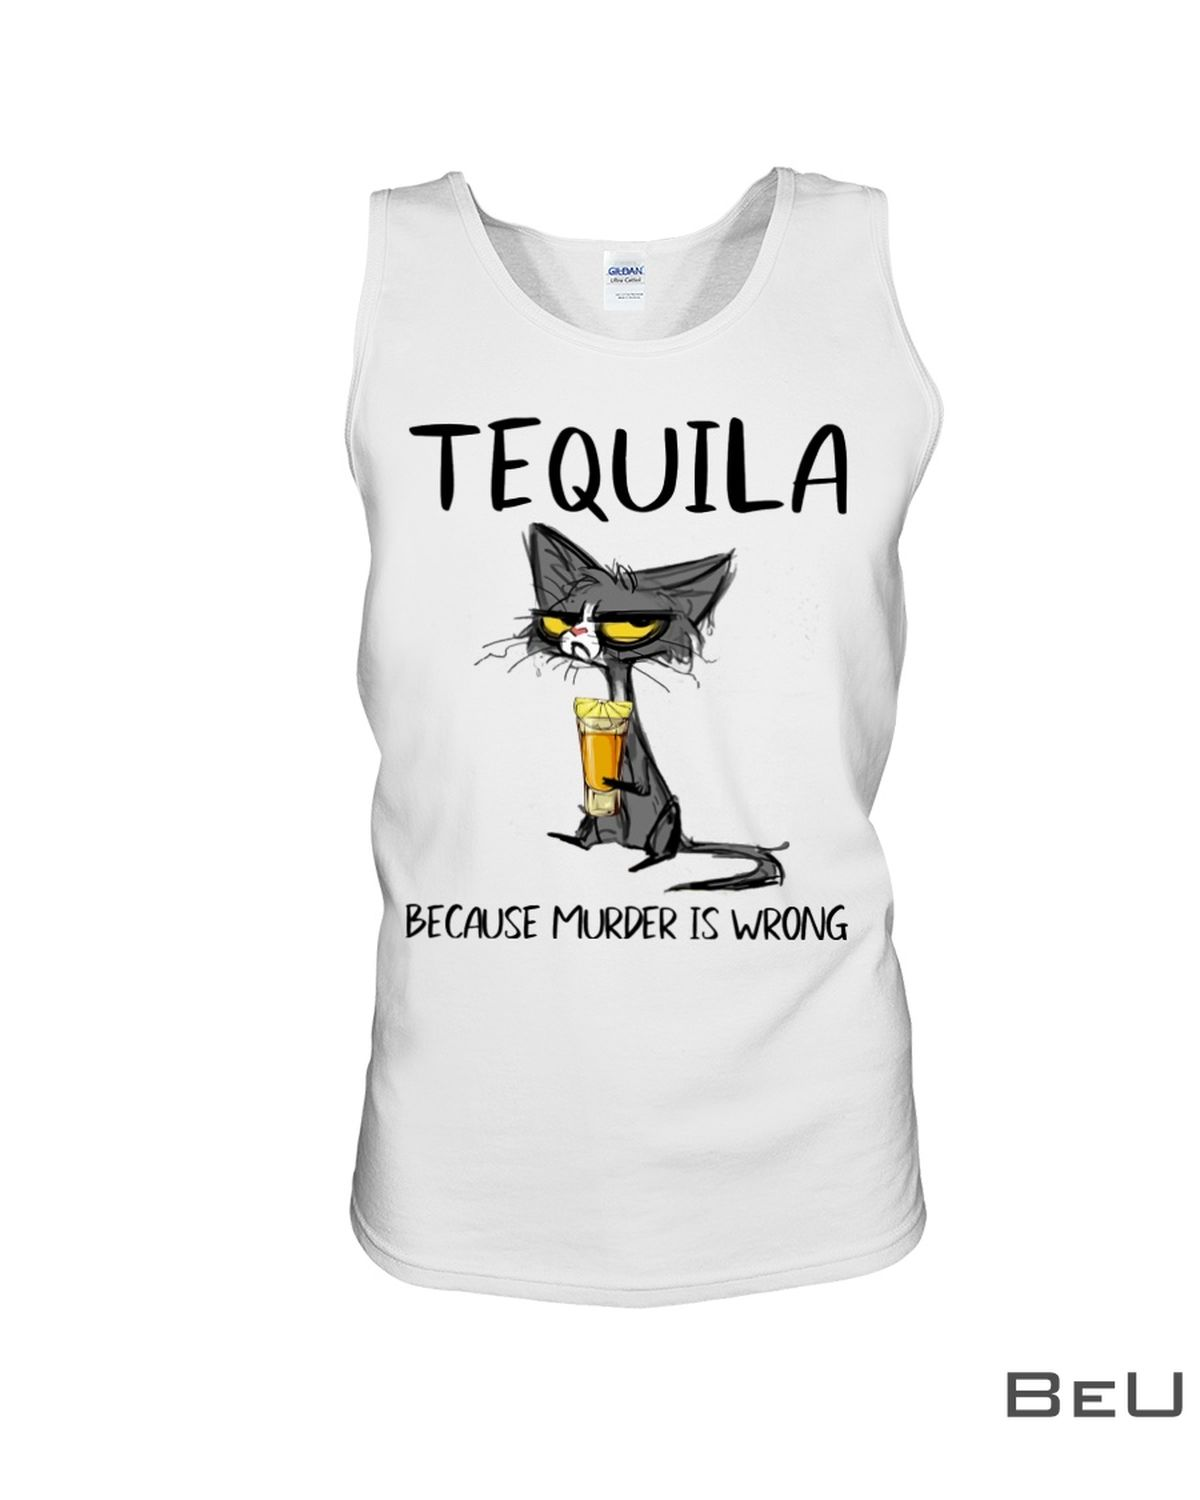 Tequila Because Murder Is Wrong Shirtc